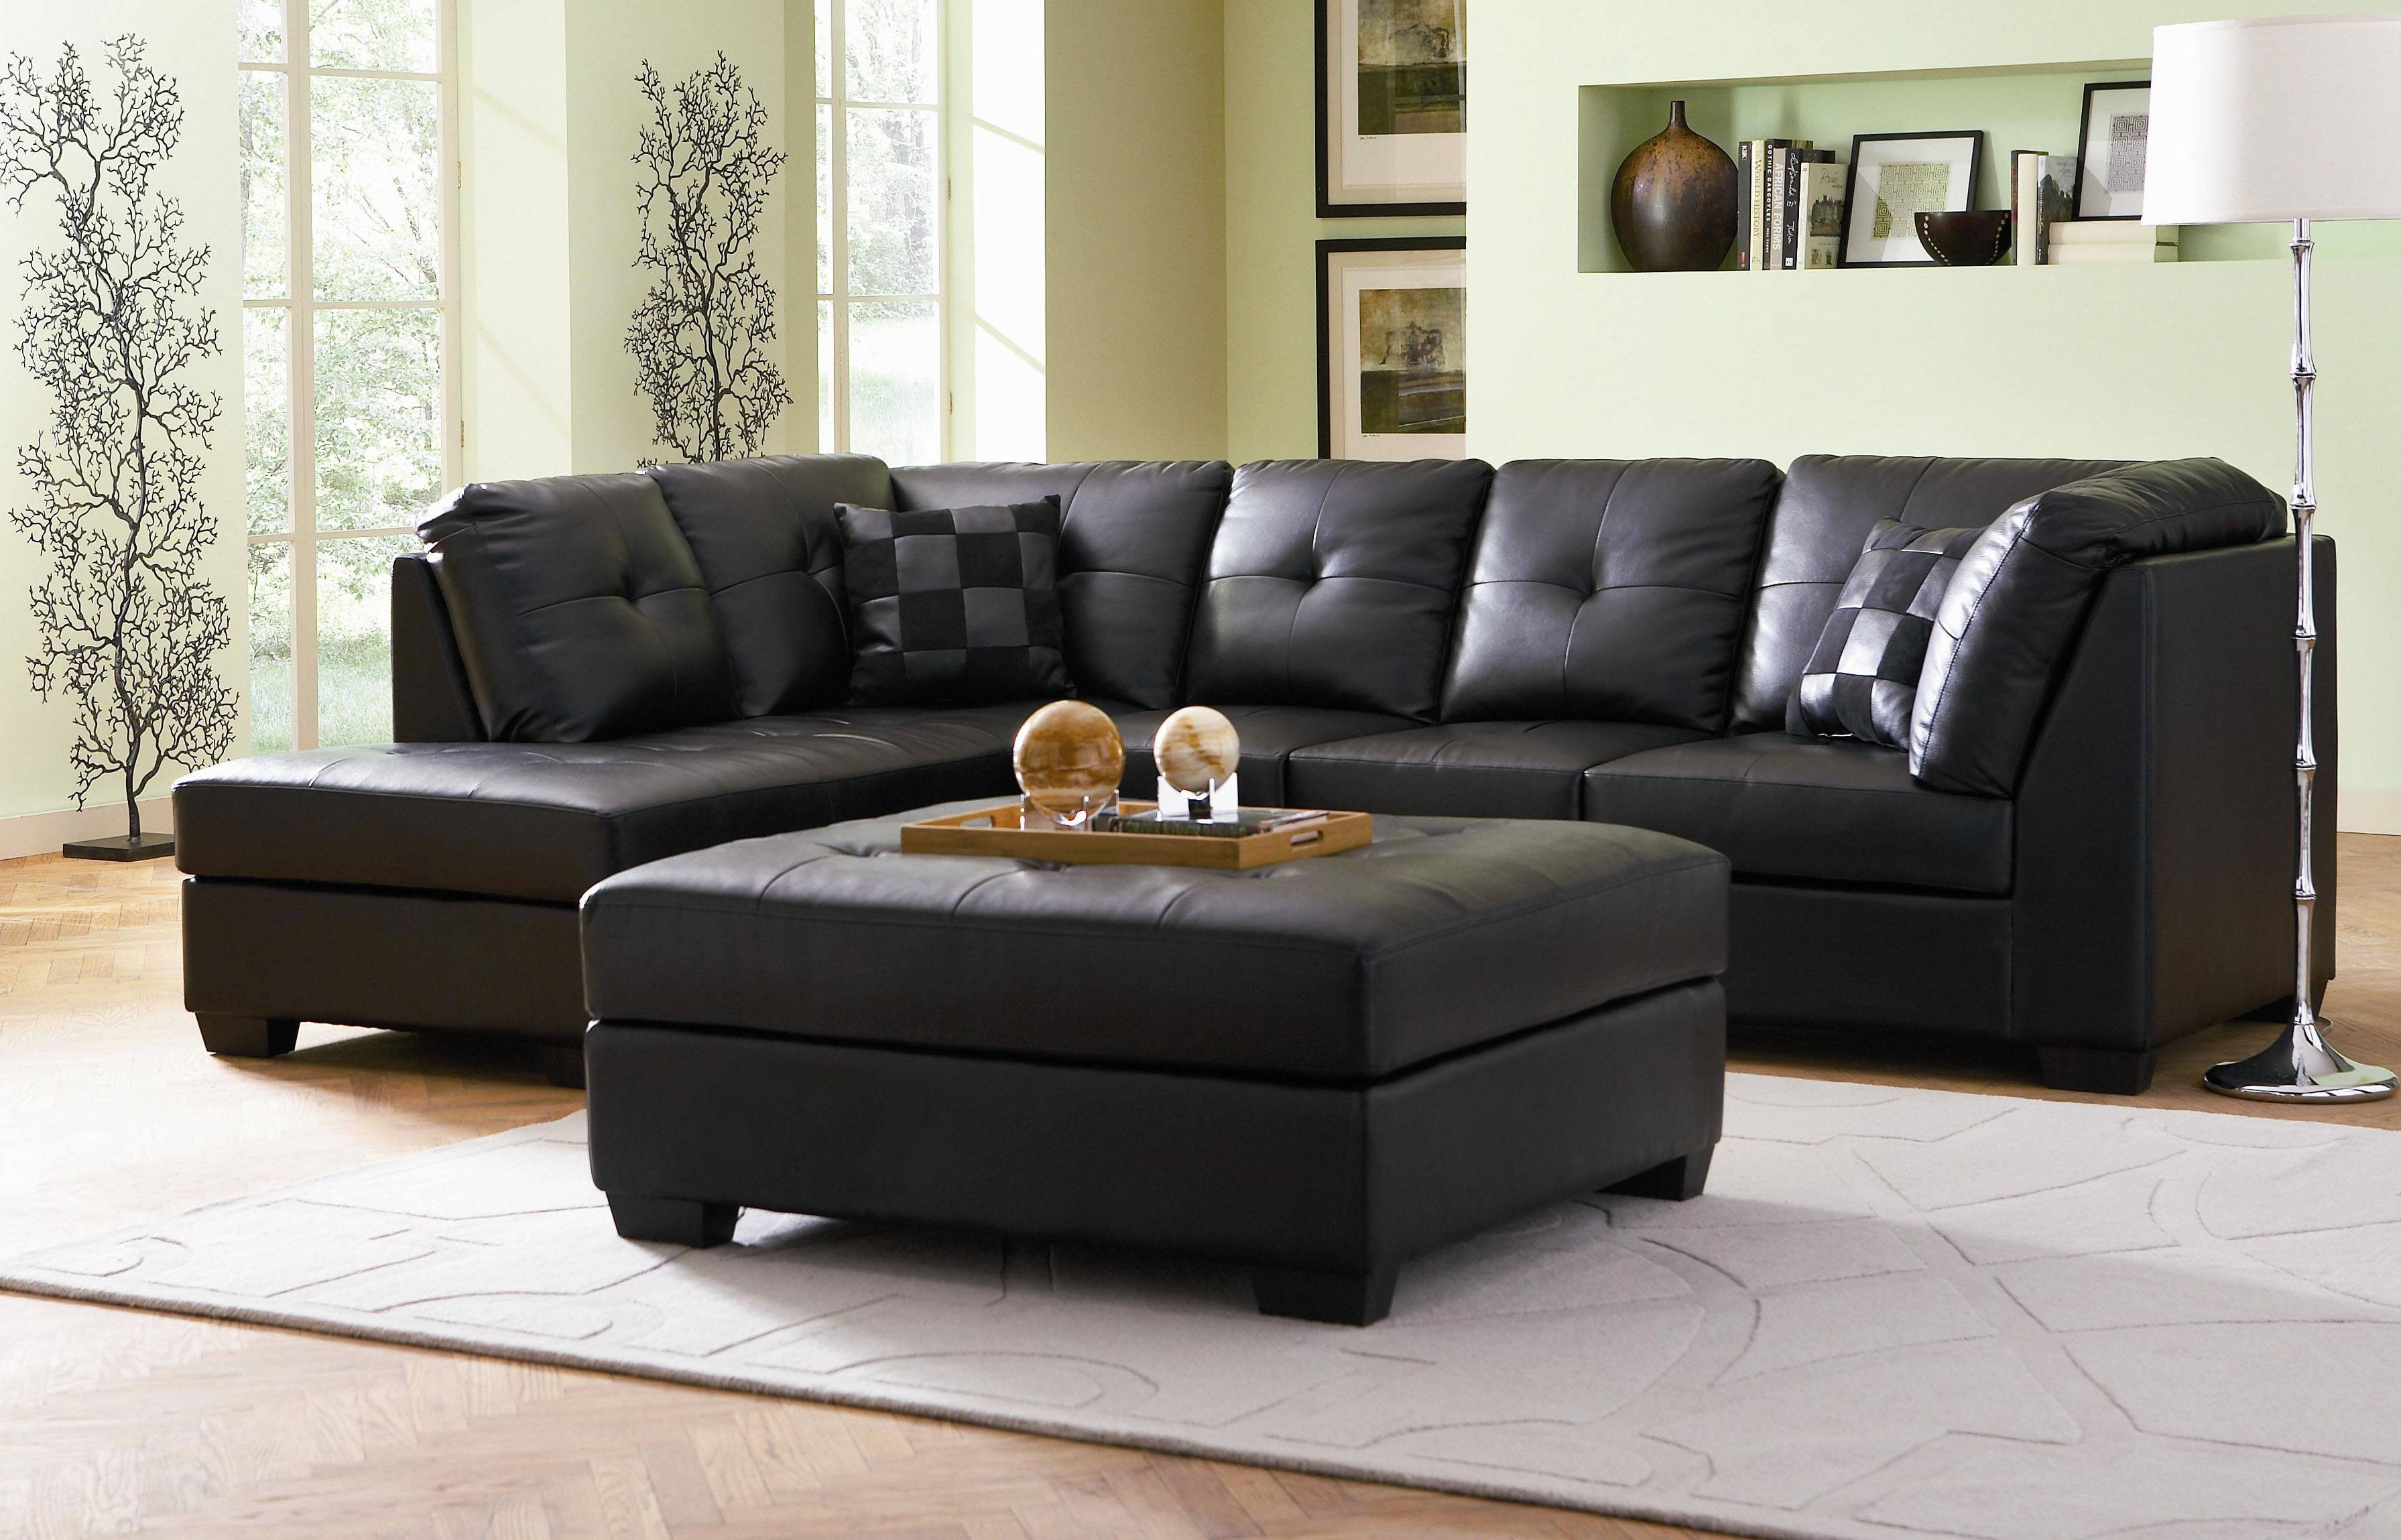 L Shaped Sectional. Small Chaise Sectional Small Chaise Sectional for Leather L Shaped Sectional Sofas (Image 18 of 30)